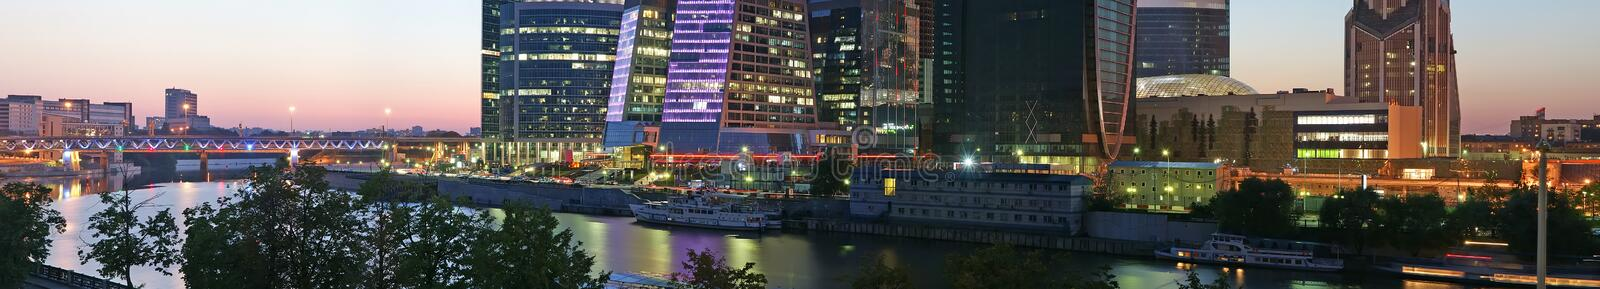 Download Panorama Of The International Business Centre Stock Image - Image: 22378441